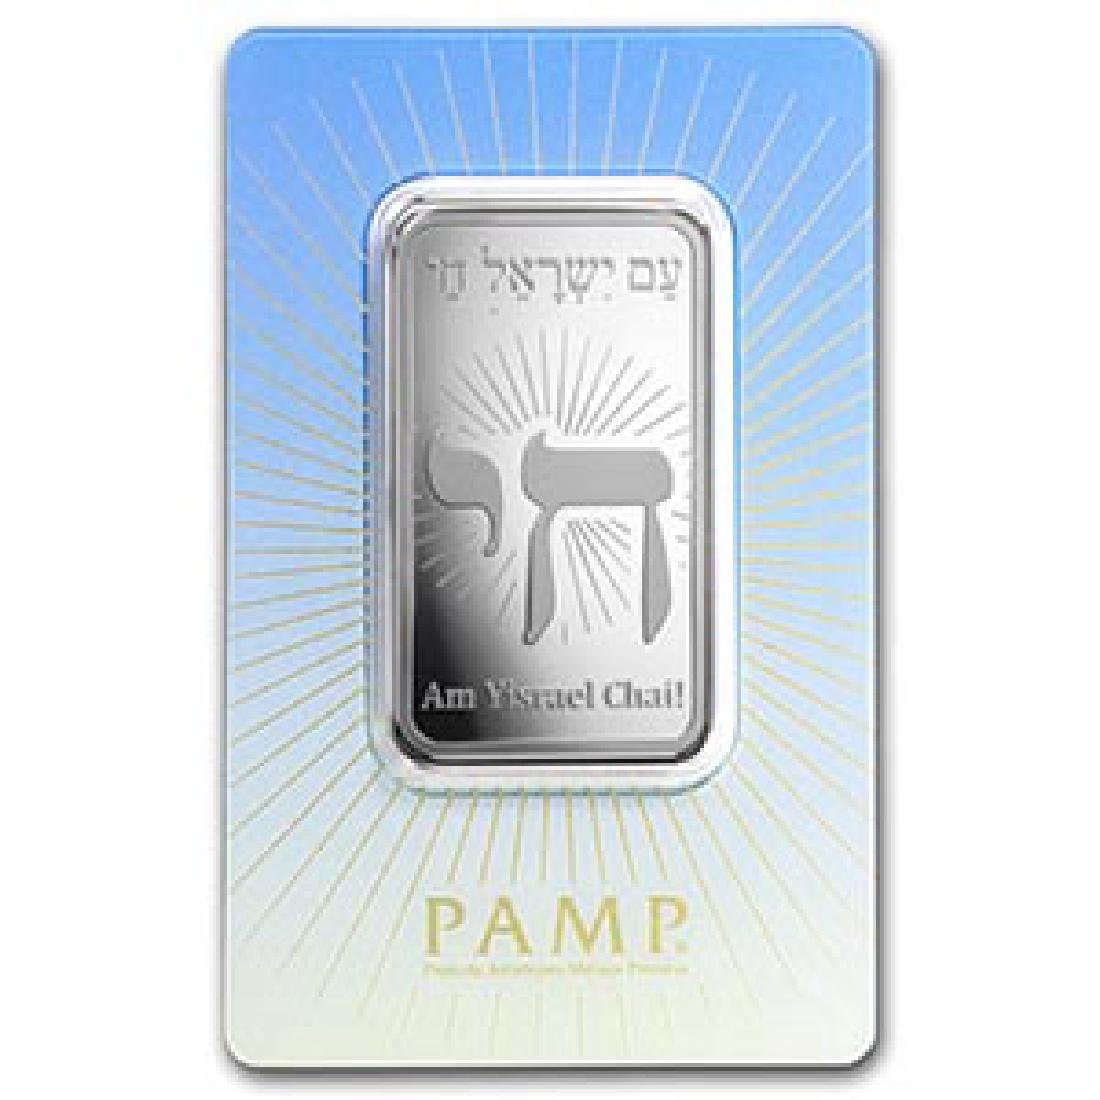 1 oz Silver Bar - PAMP Suisse Religious Series (Am Yisr